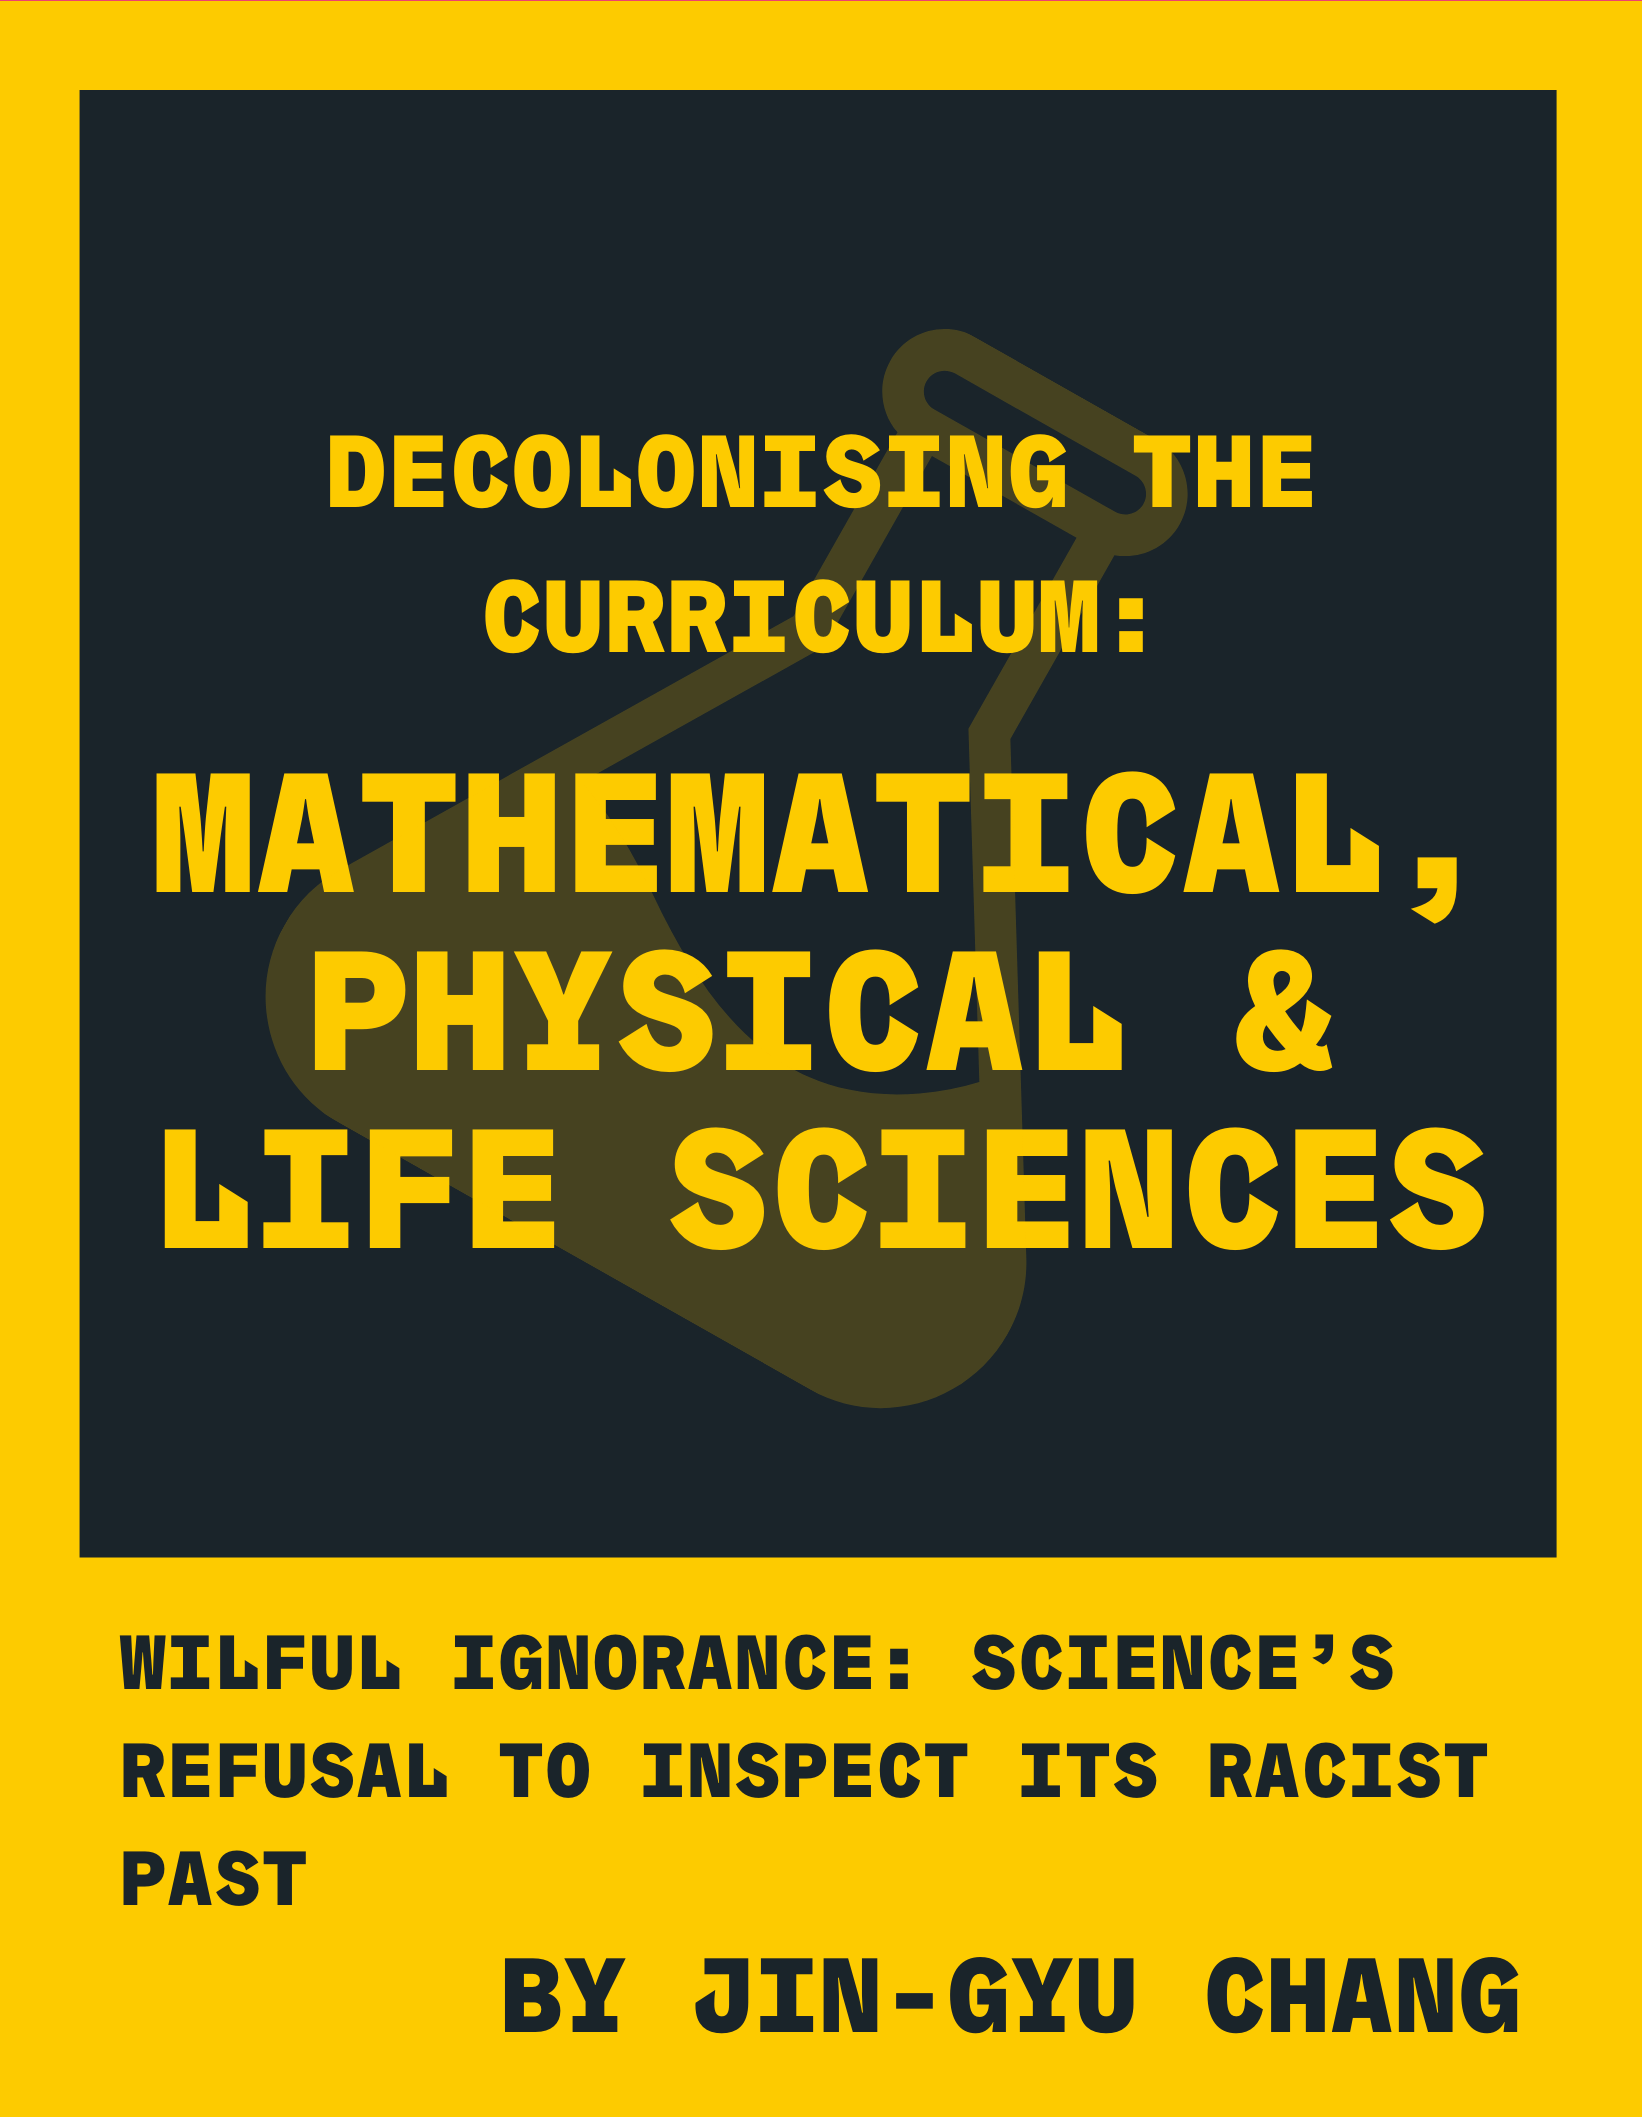 Decolonising the Curriculum: Mathematical, Physical & Life Sciences